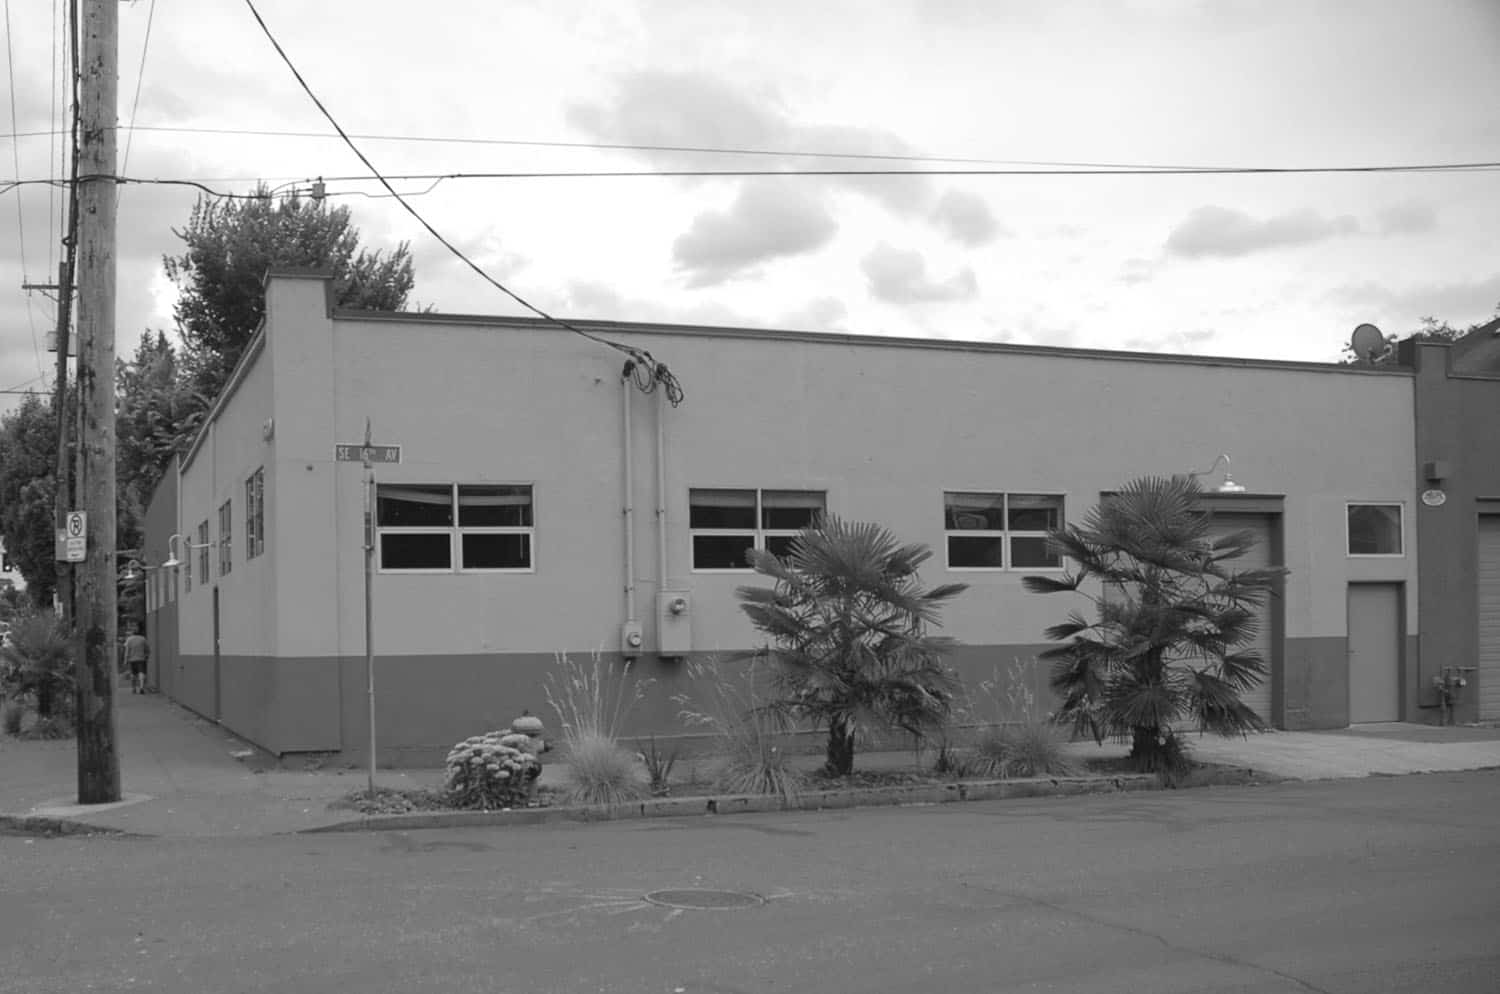 industrial-exterior-before-remodel